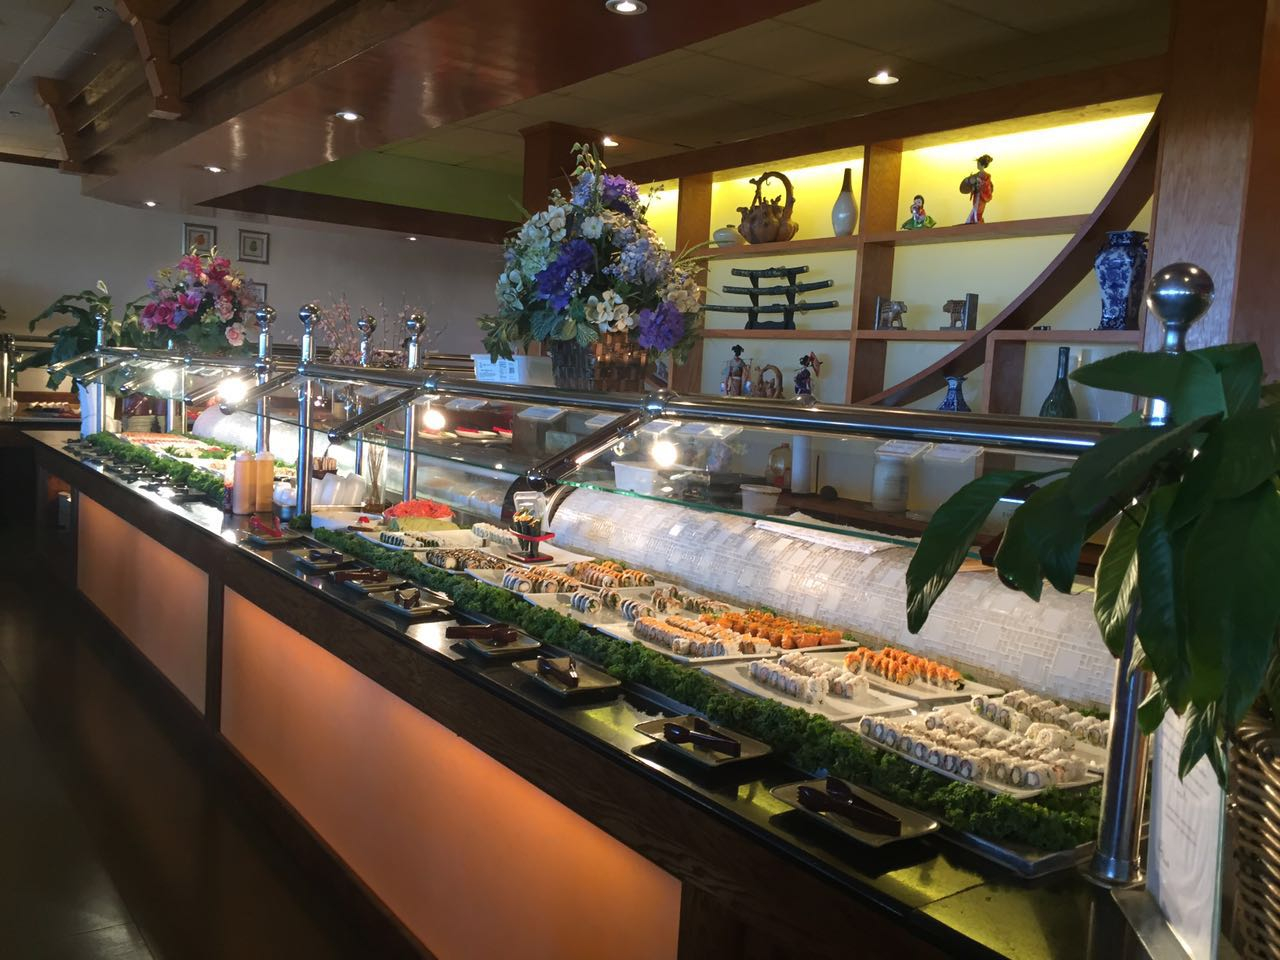 Surprising Kumo Buffet Sushi Seafood Parma Cleveland Oh 44134 Home Interior And Landscaping Oversignezvosmurscom